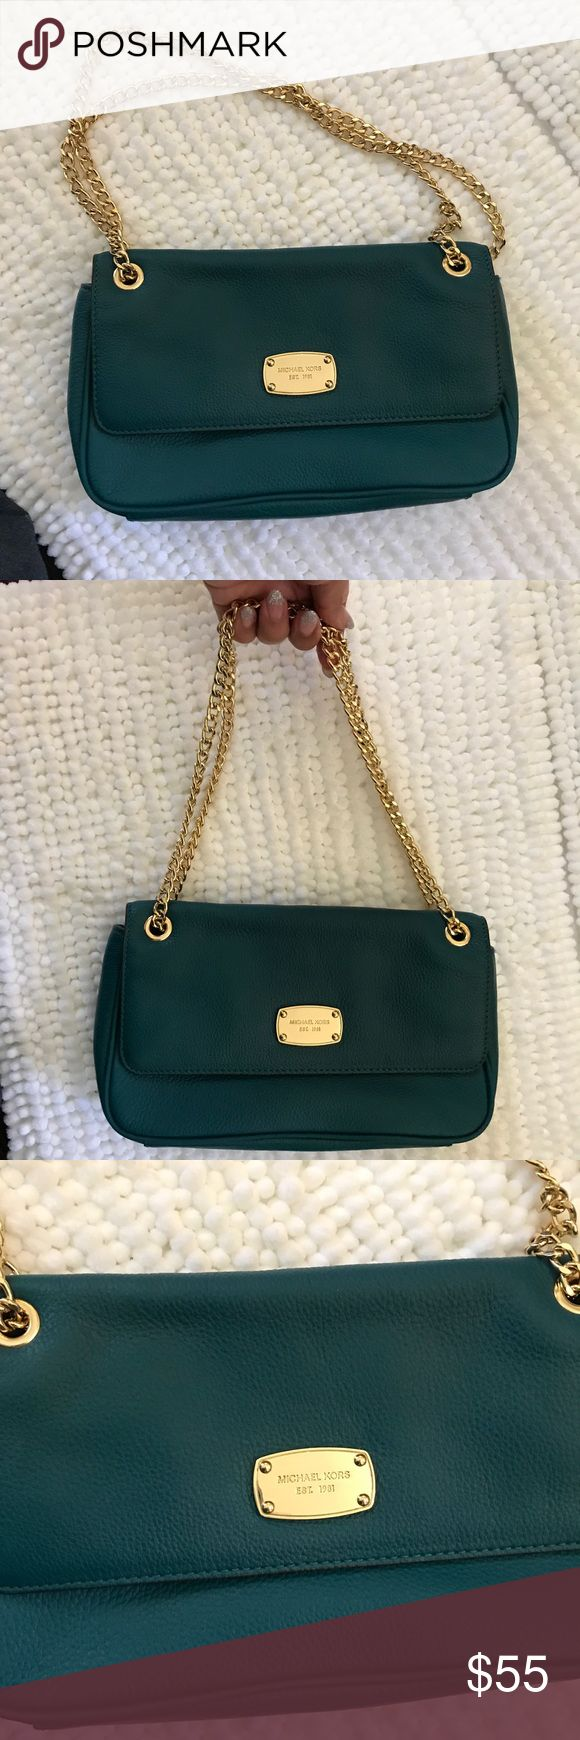 Michael Kors shoulder bag clutch with gold chain Michael kors used in good condition turquoise blue green shoulder bag or clutch mas a magnetic opening and an outer pocket and a gold chain strap this is a used item and may show sign of use a dirty lining or fade or scratches to leather but there is nothing major to report if you'd like more pics please ask Michael Kors Bags Shoulder Bags